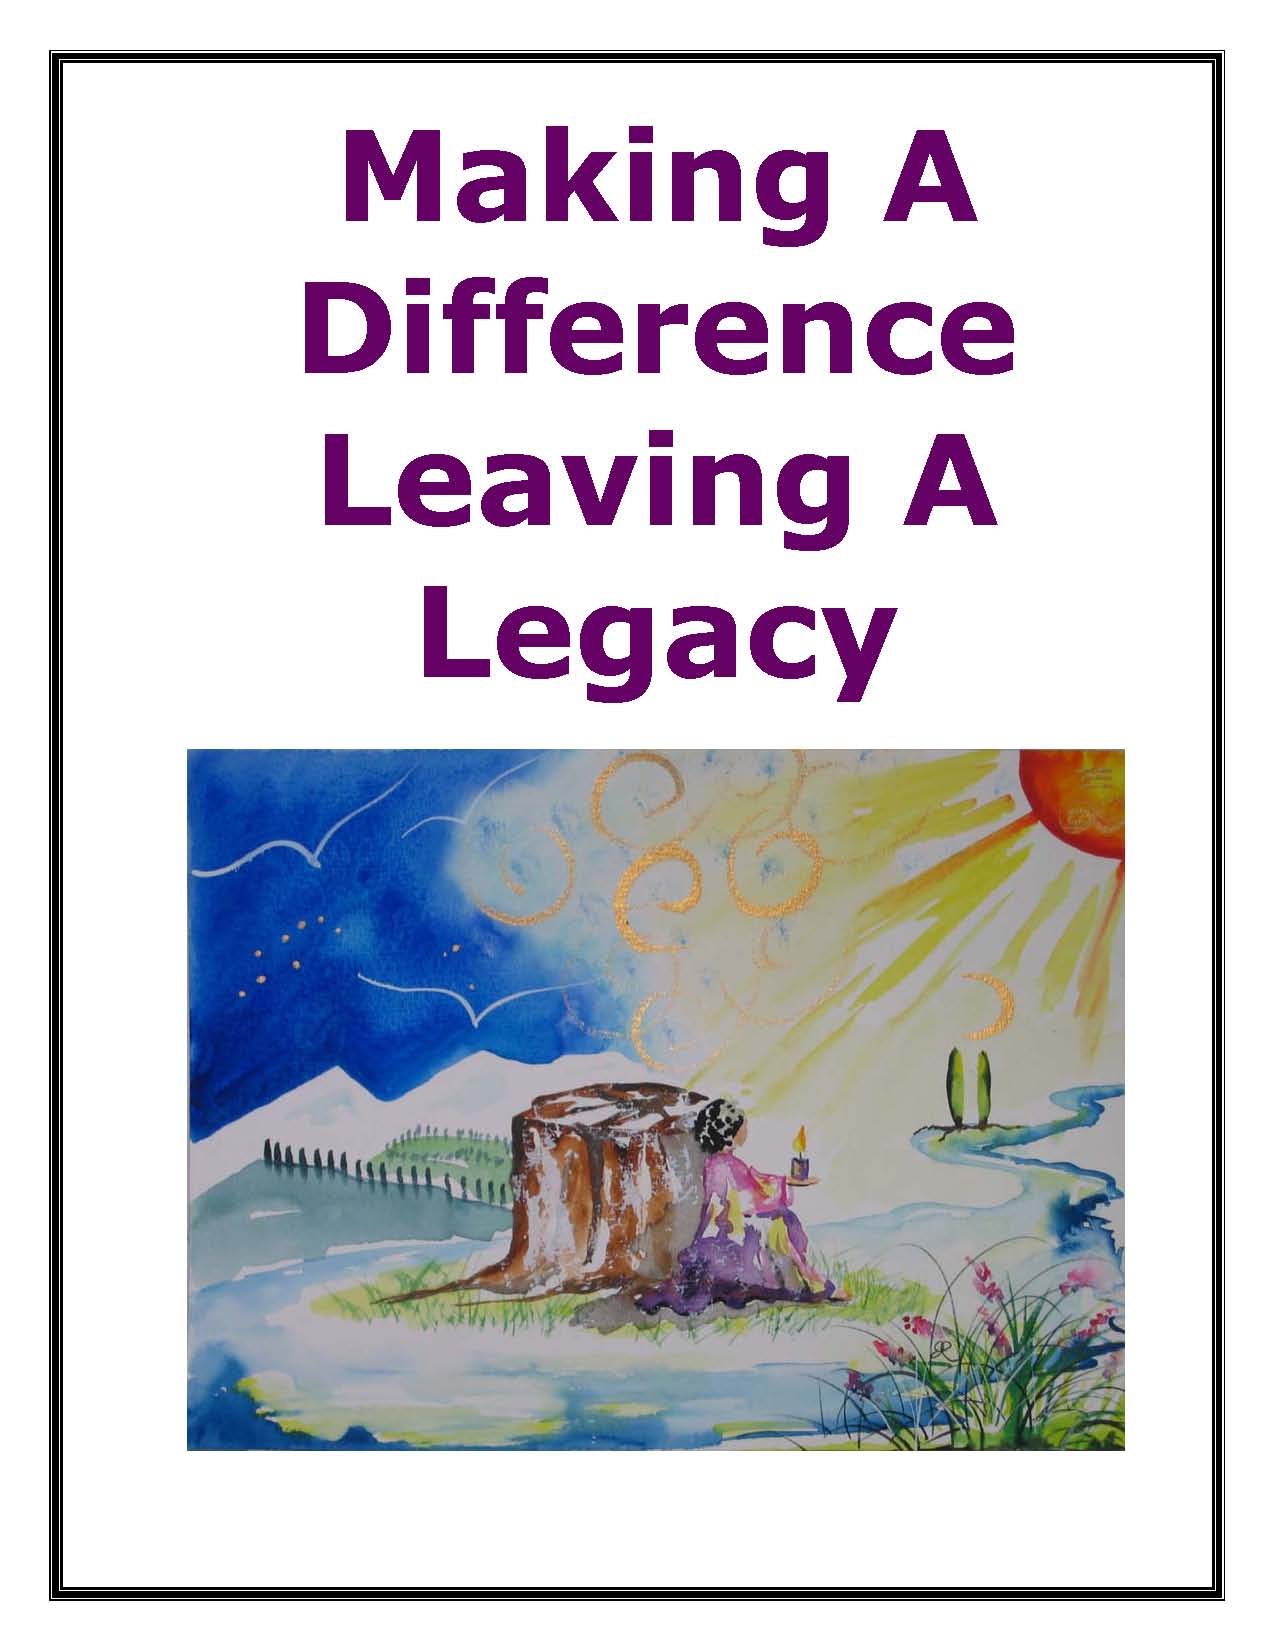 Making A Difference, Leaving A Legacy